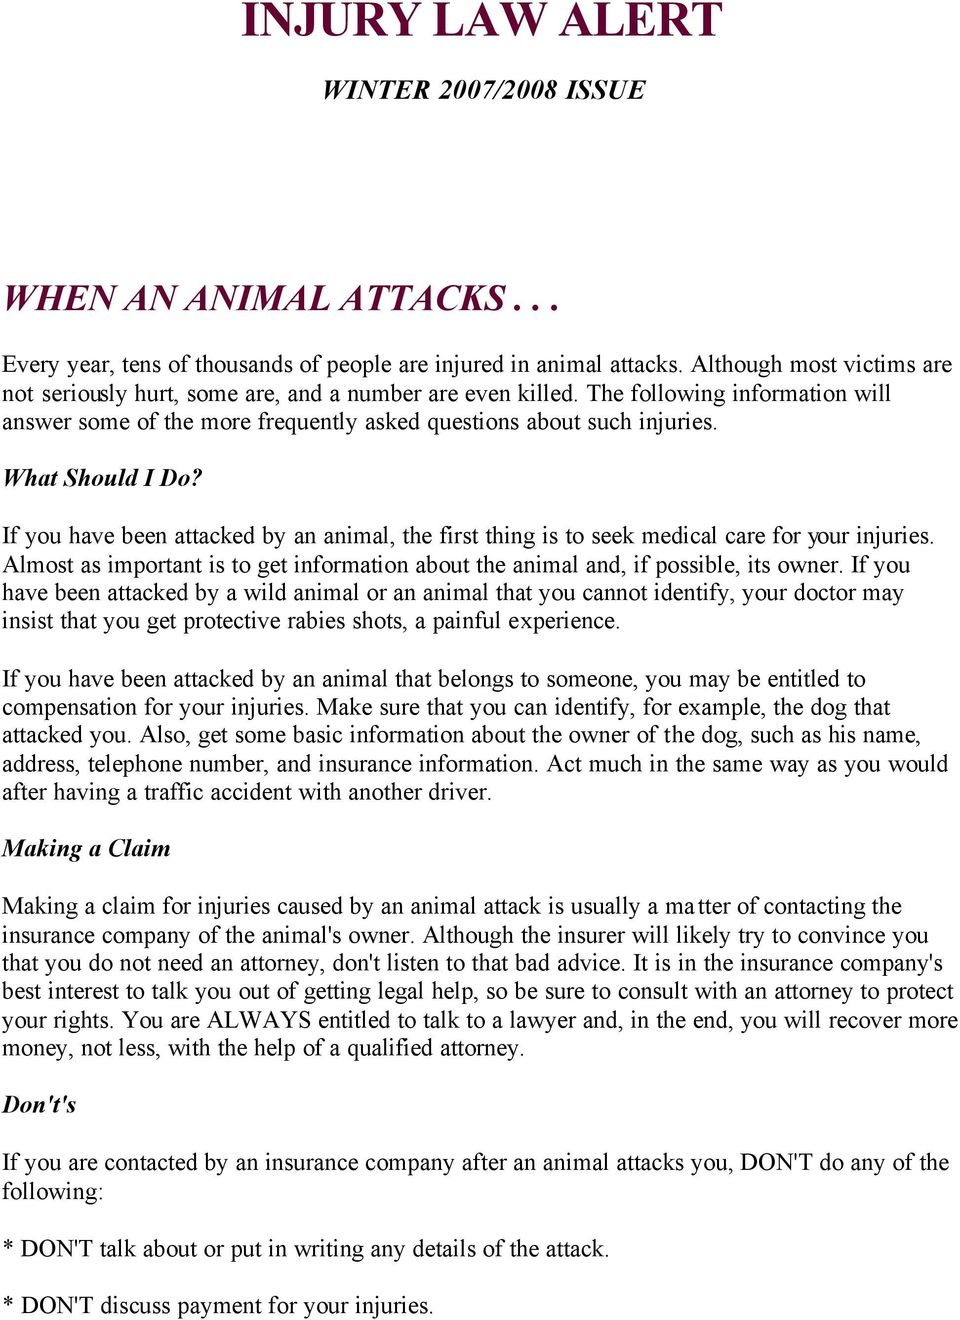 What Should I Do? If you have been attacked by an animal, the first thing is to seek medical care for your injuries.